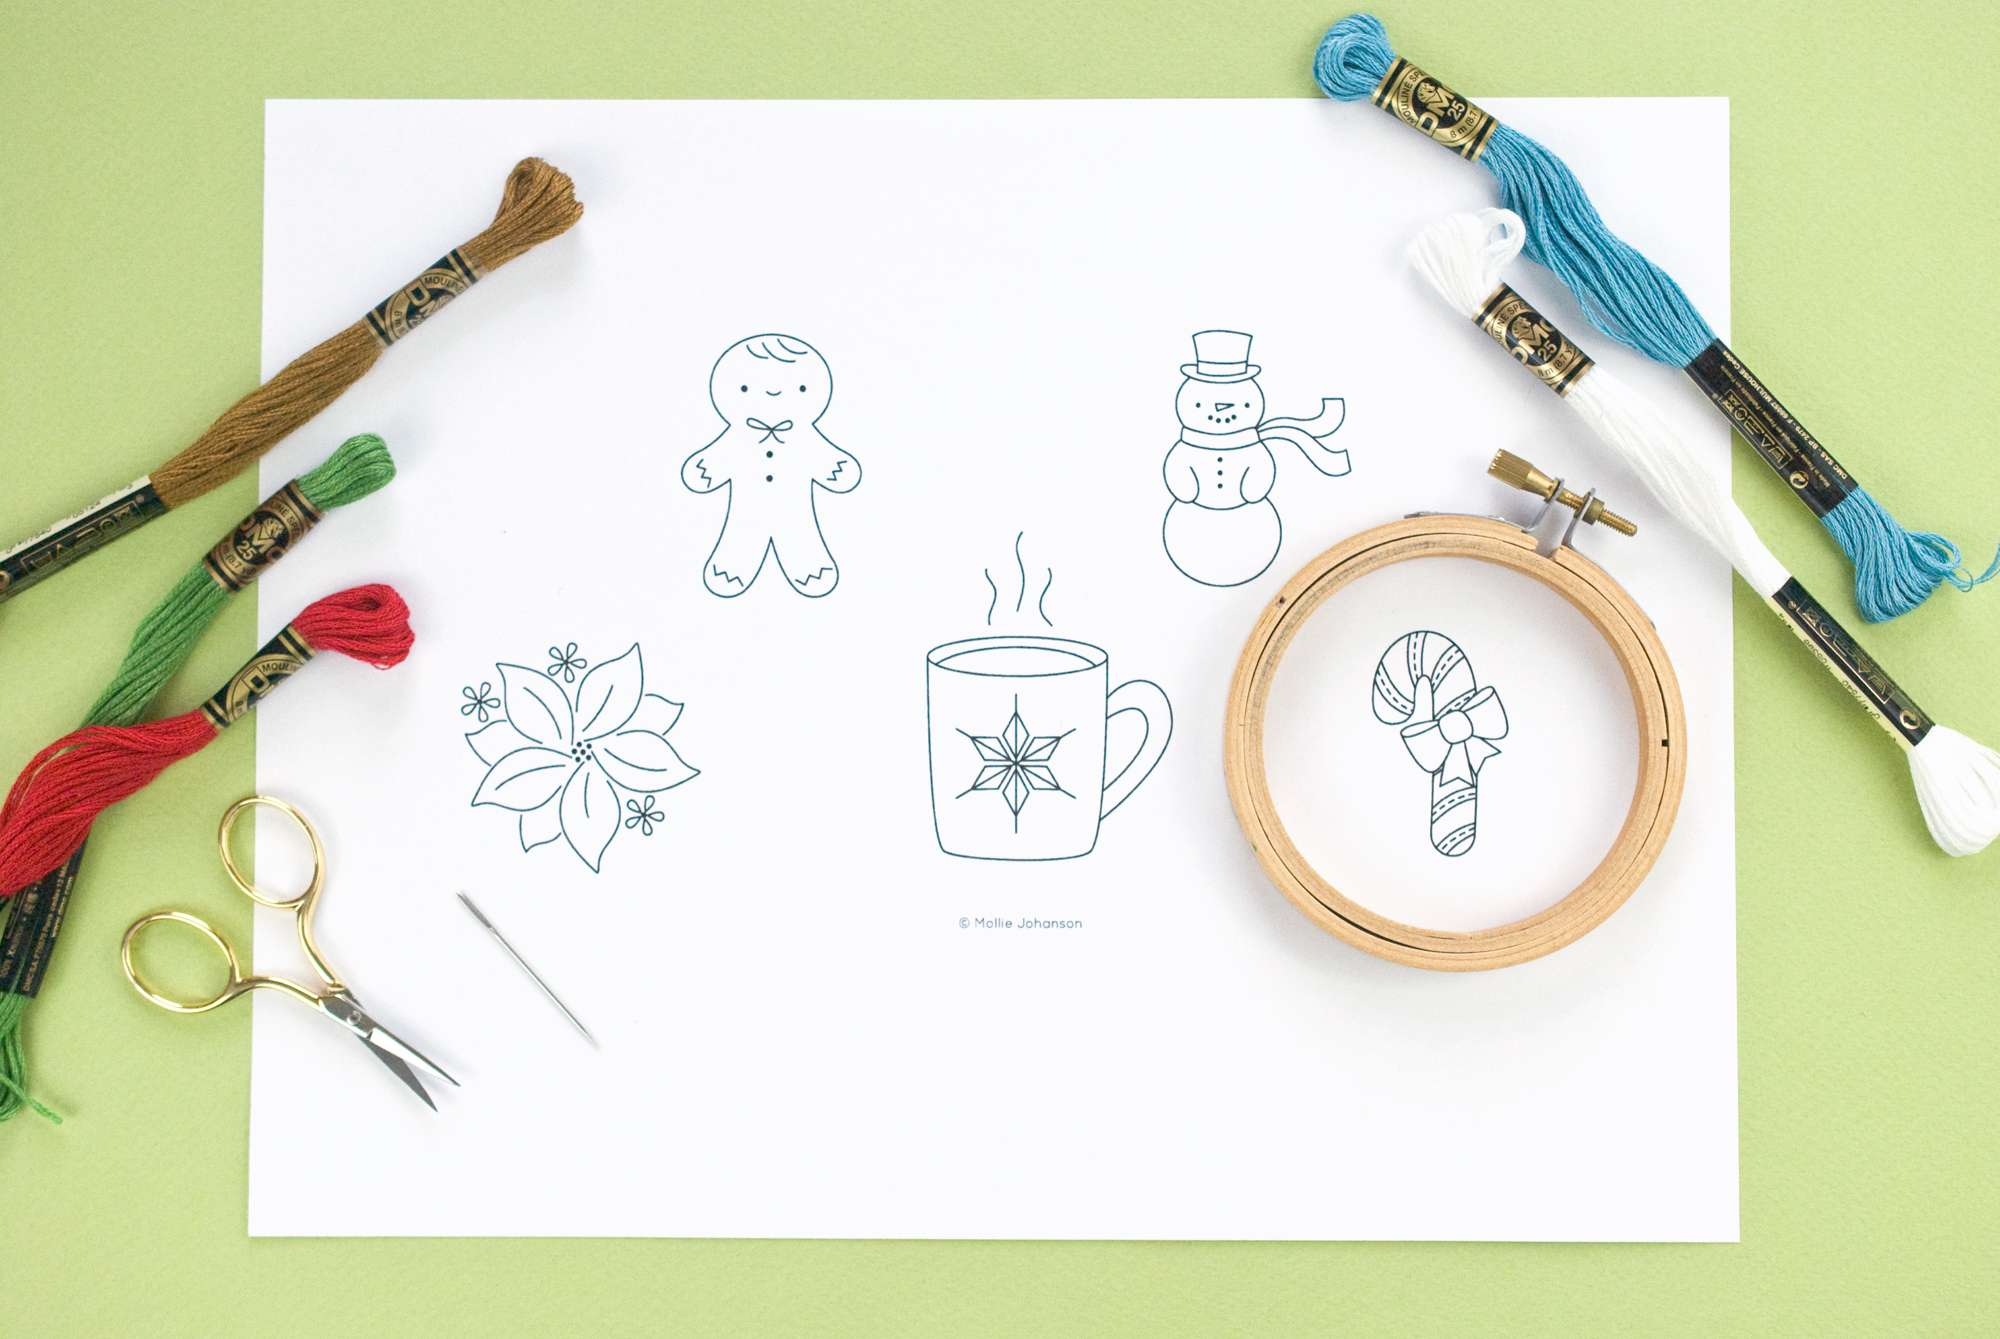 Christmas Embroidery Patterns Free.10 Free Christmas Hand Embroidery Patterns